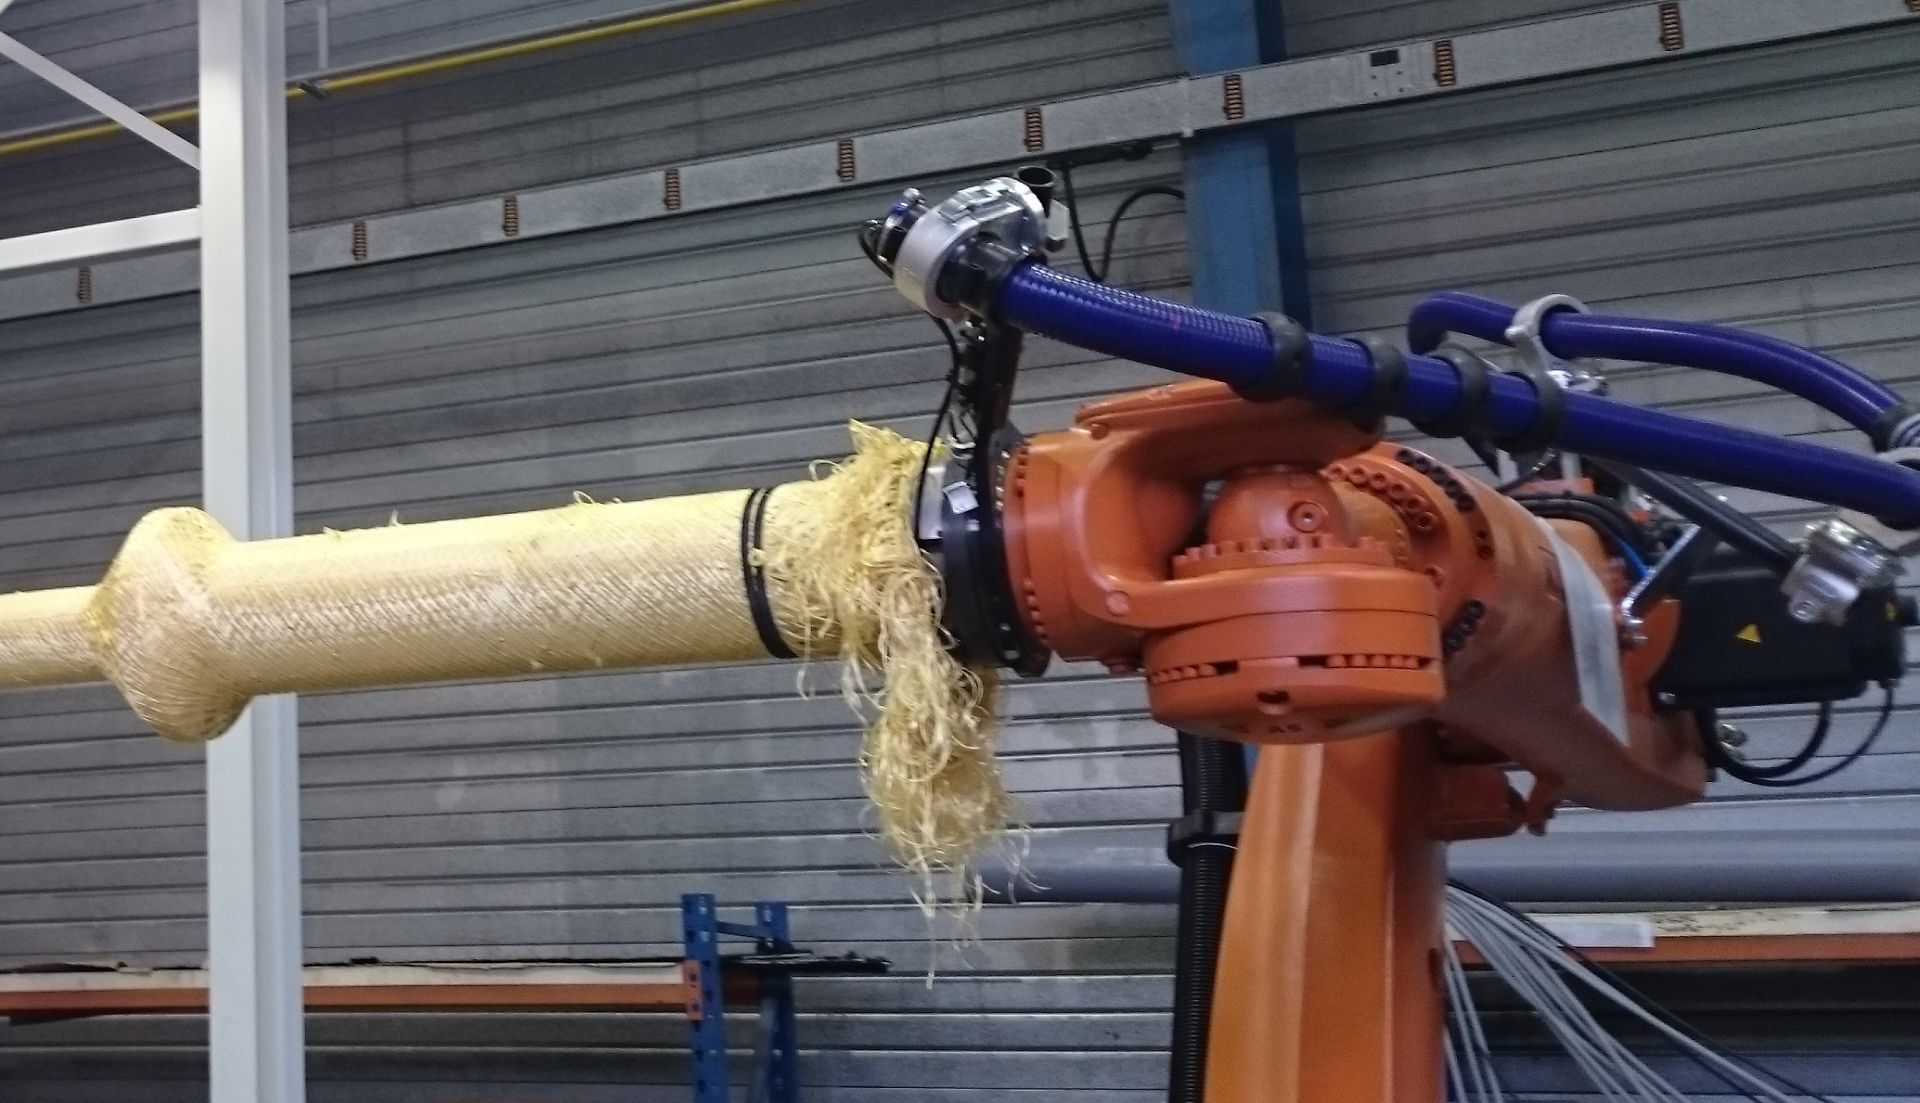 Robot Kuka - Machine Composite